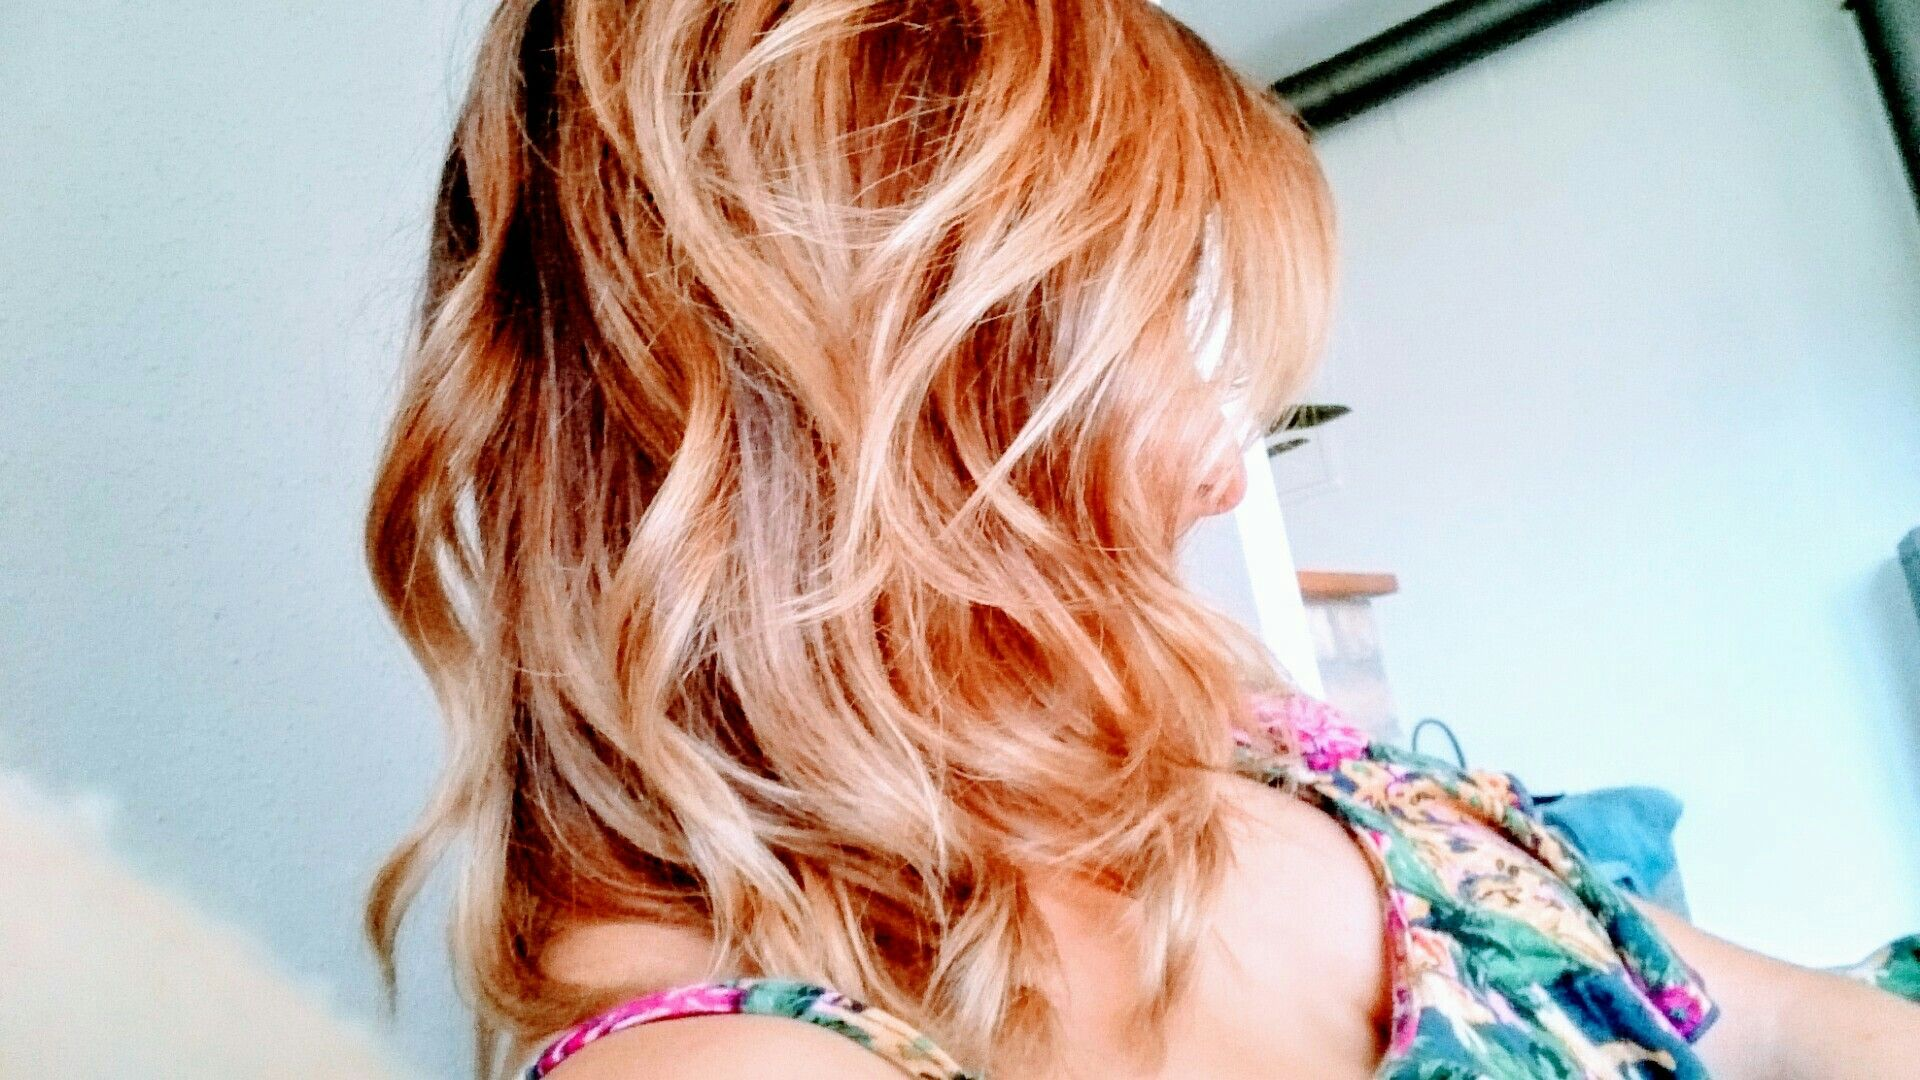 #Curly hairs #Rosegoldhairs #balayage #ombre